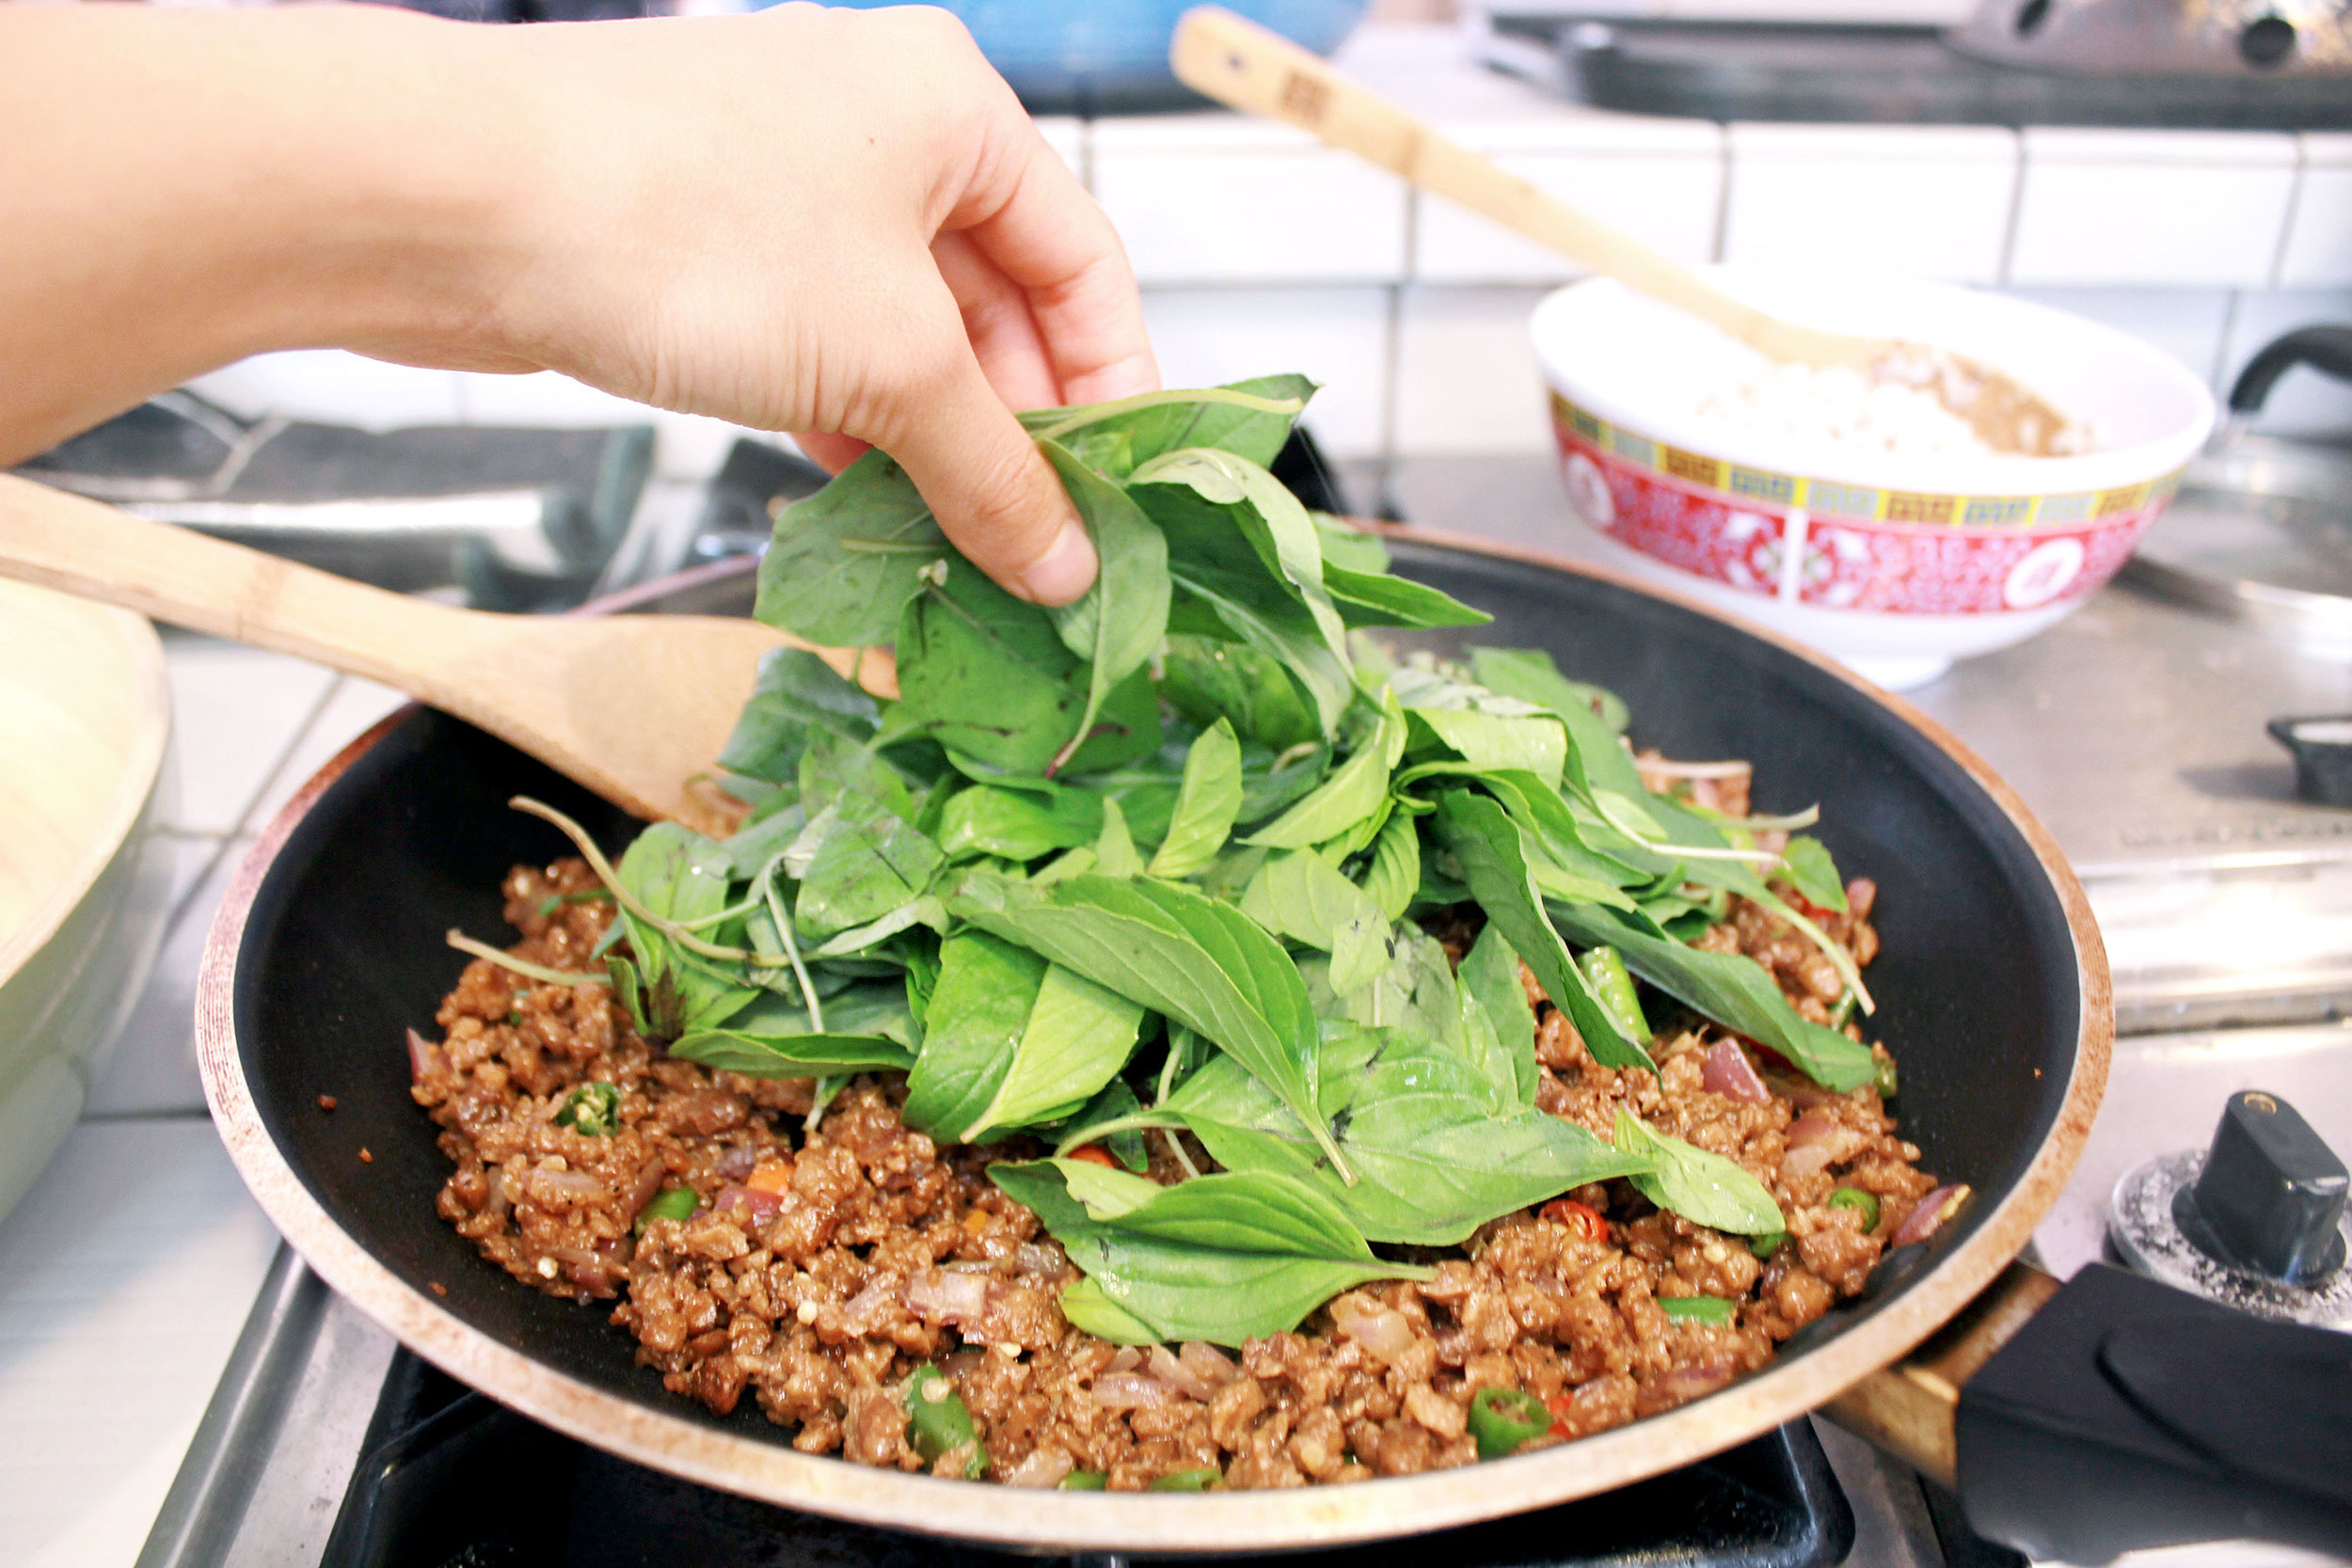 STEP 4 - Turn off the heat, add Thai basil, and mix in. The heat will wilt the basil quickly.